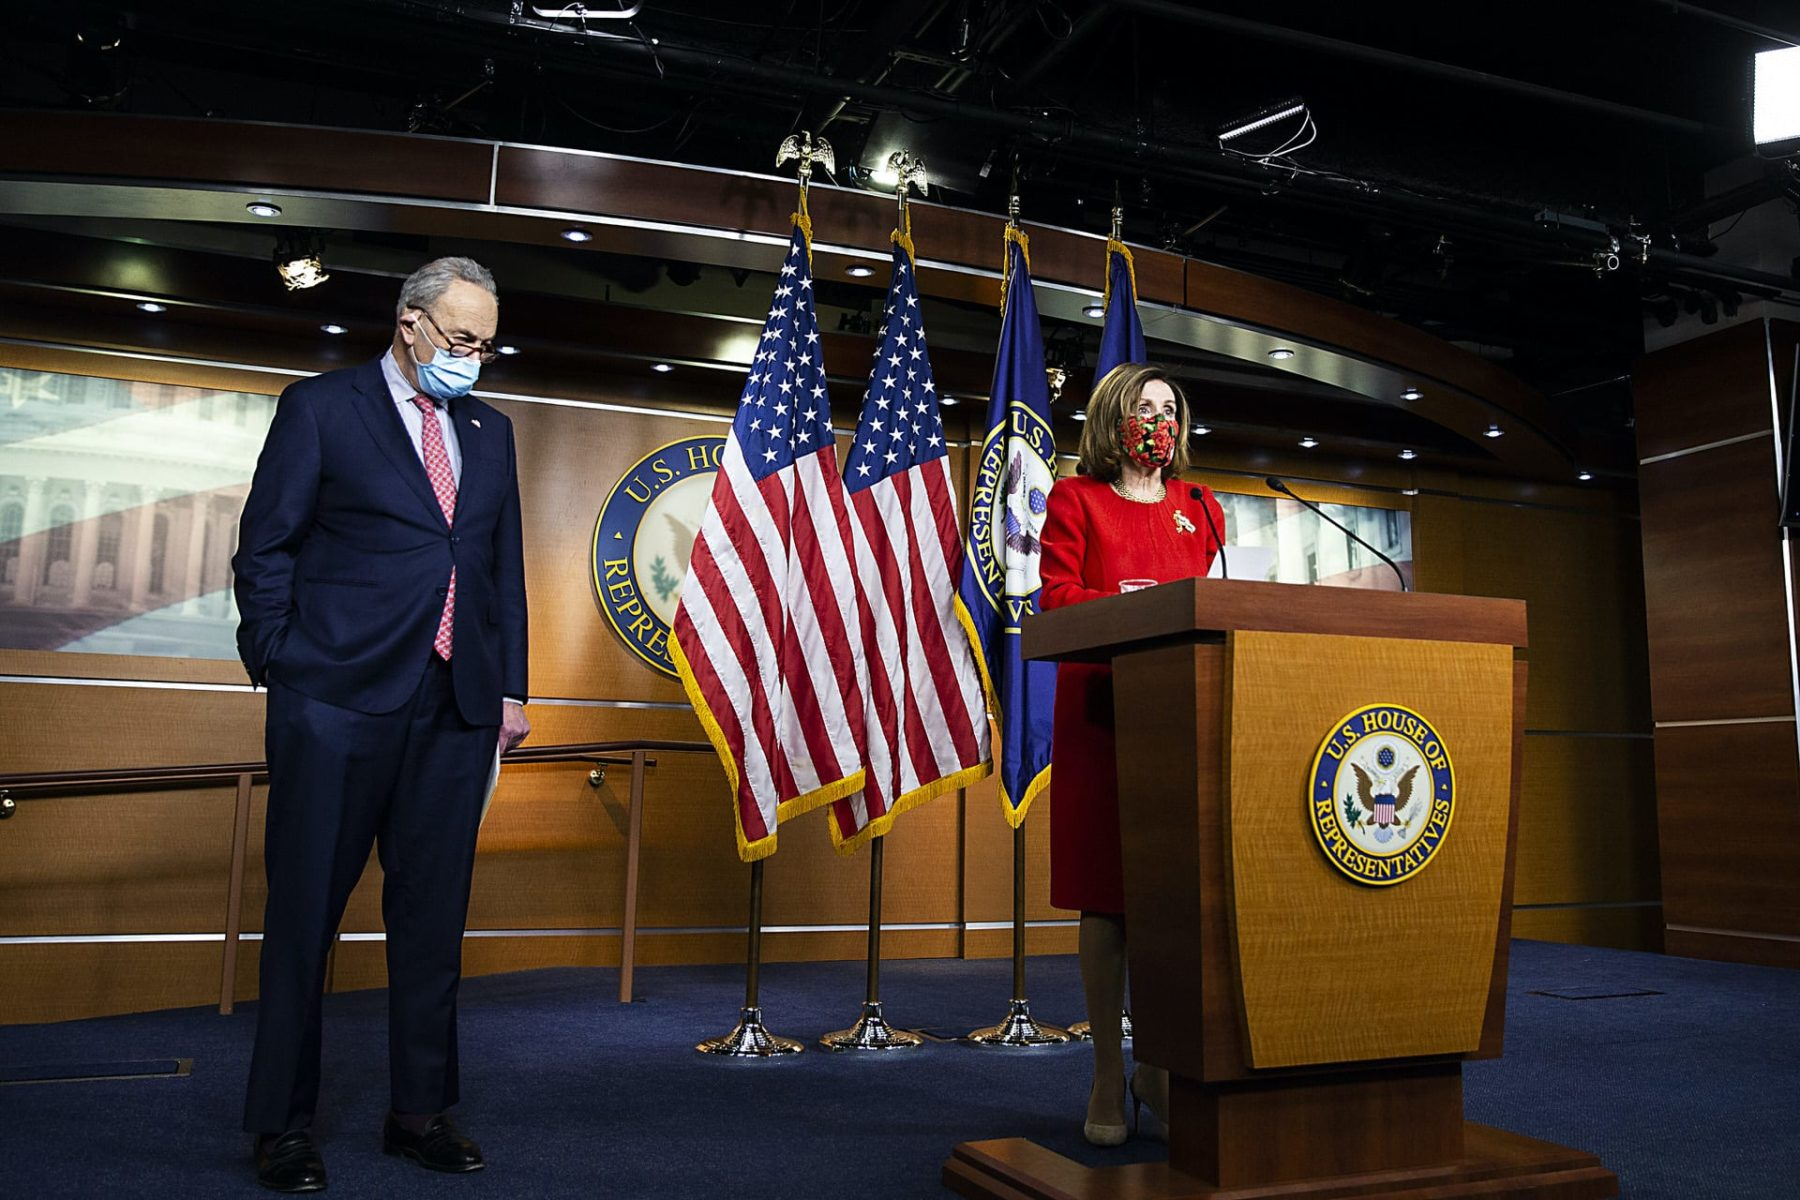 Nancy Pelosi stands at a podium with Chuck Schumer to her right.